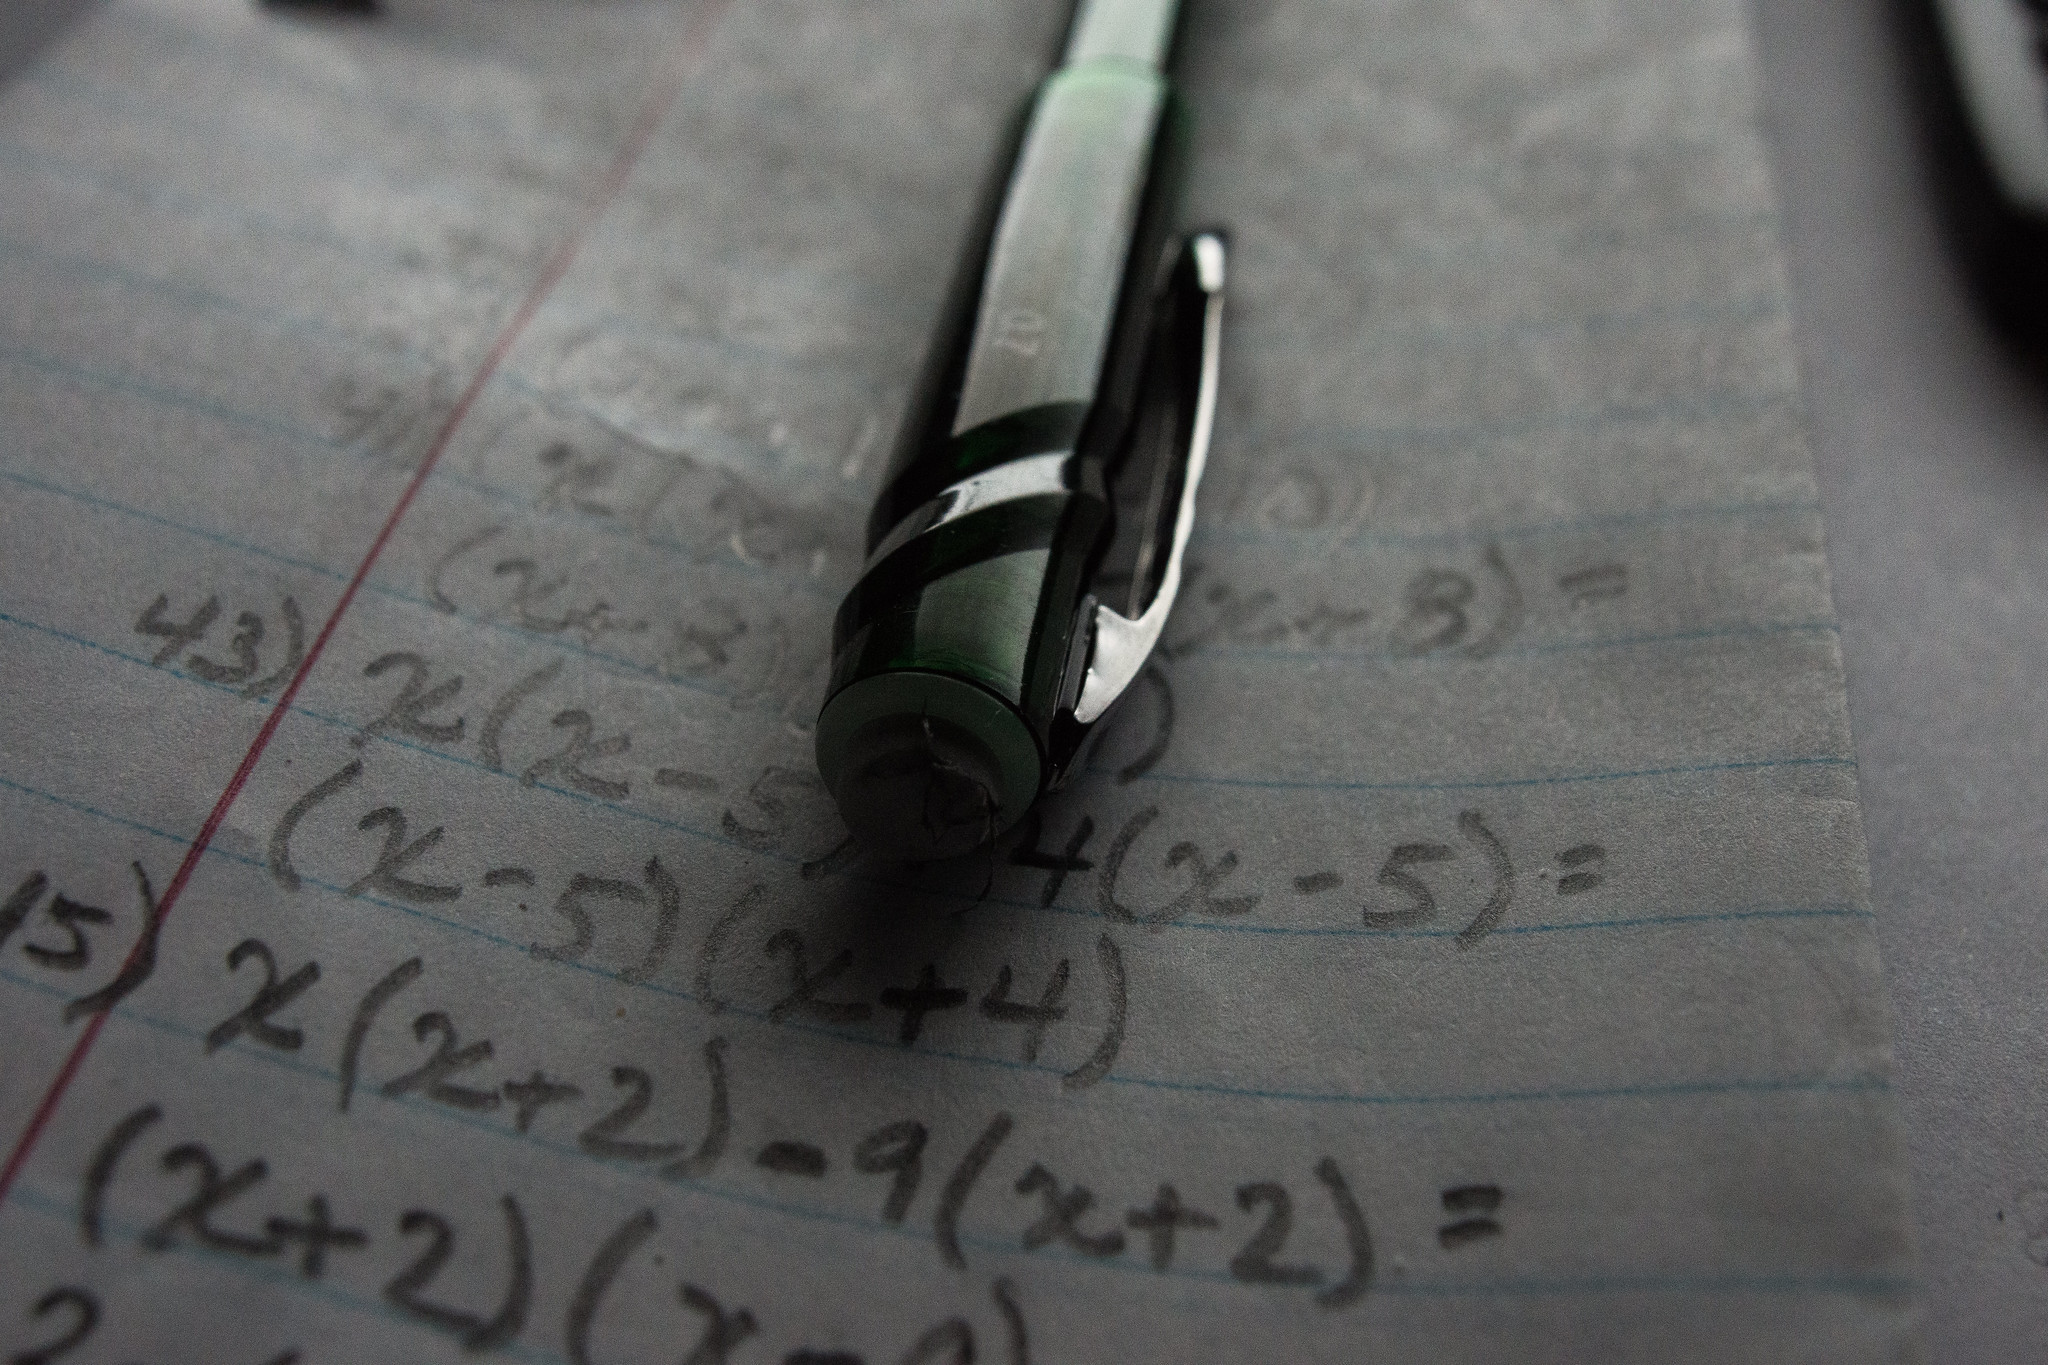 Math formulas written on lined paper with a pen resting on top. Unlike the math homework pictured above, Piceno says that due to COVID-19, he converted all his coursework to digital assignment to avoid passing papers back and forth with students.